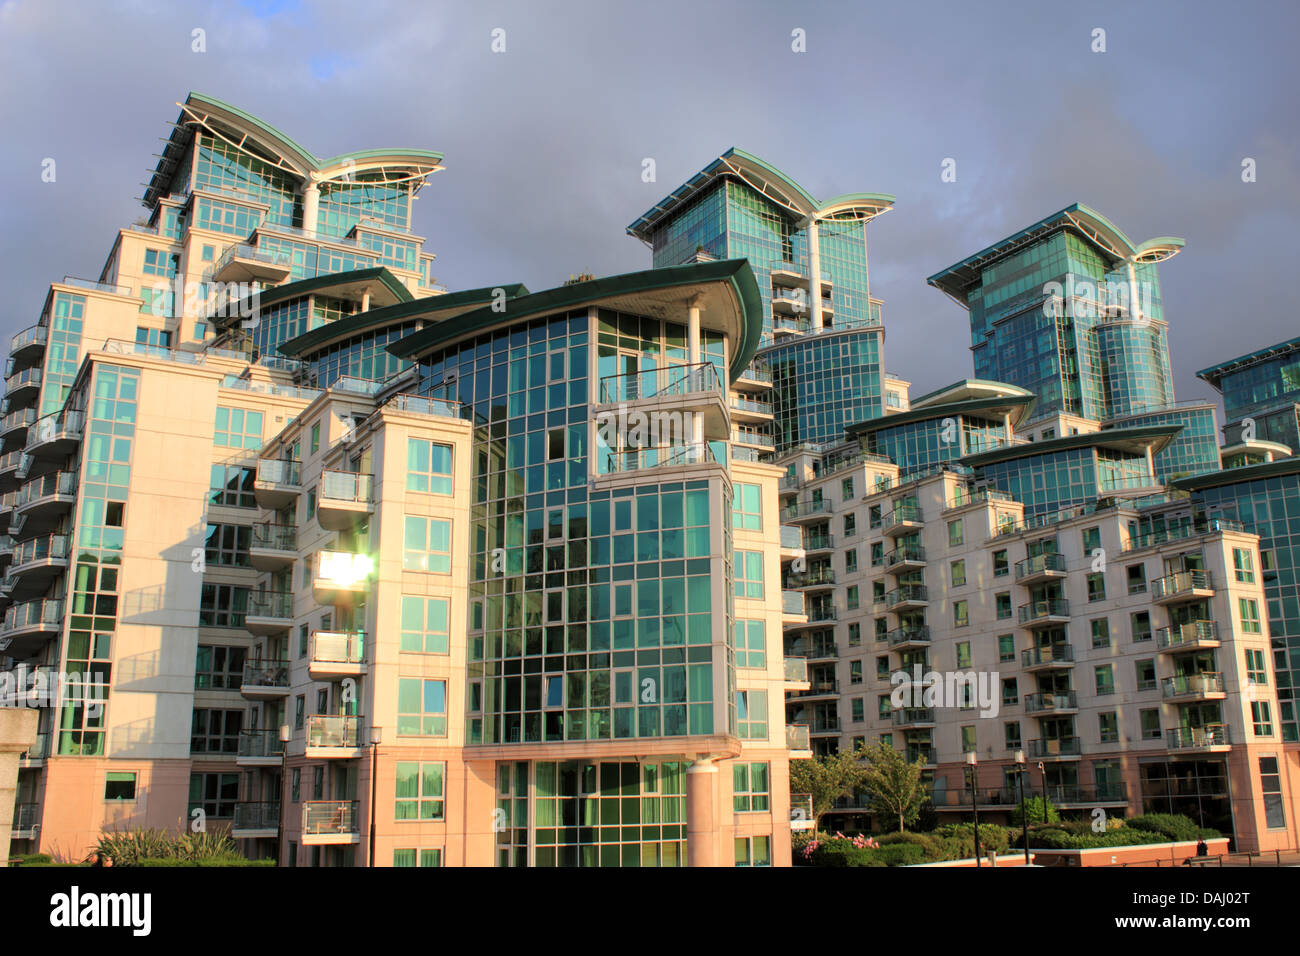 St George Wharf is a riverside development in the London Borough of Lambeth, England, on the River Thames. London - Stock Image